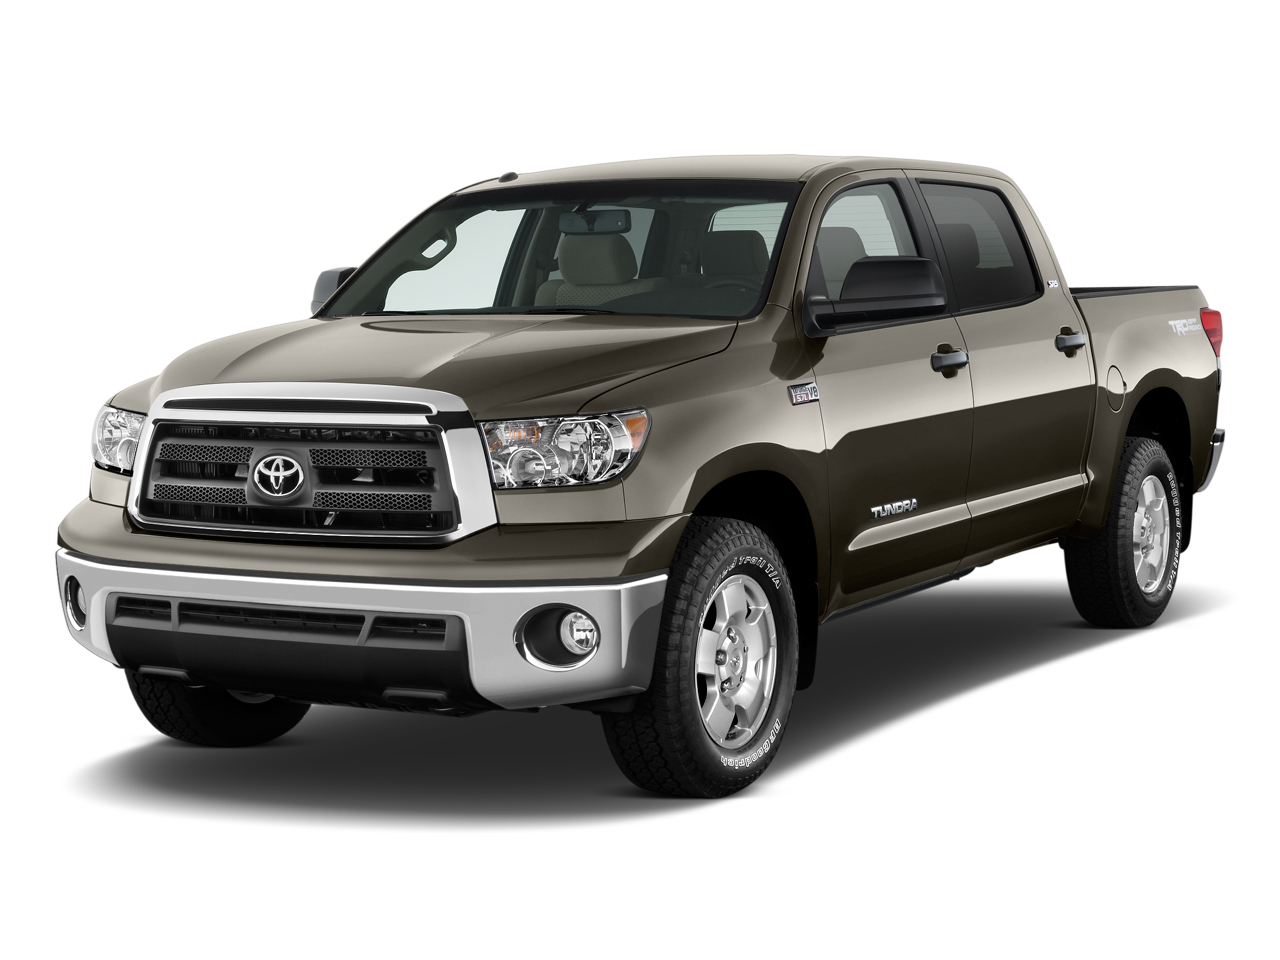 2010 toyota tundra crewmax 5 7l v8 6 spd at grade natl angular front exterior view 100250126. Black Bedroom Furniture Sets. Home Design Ideas